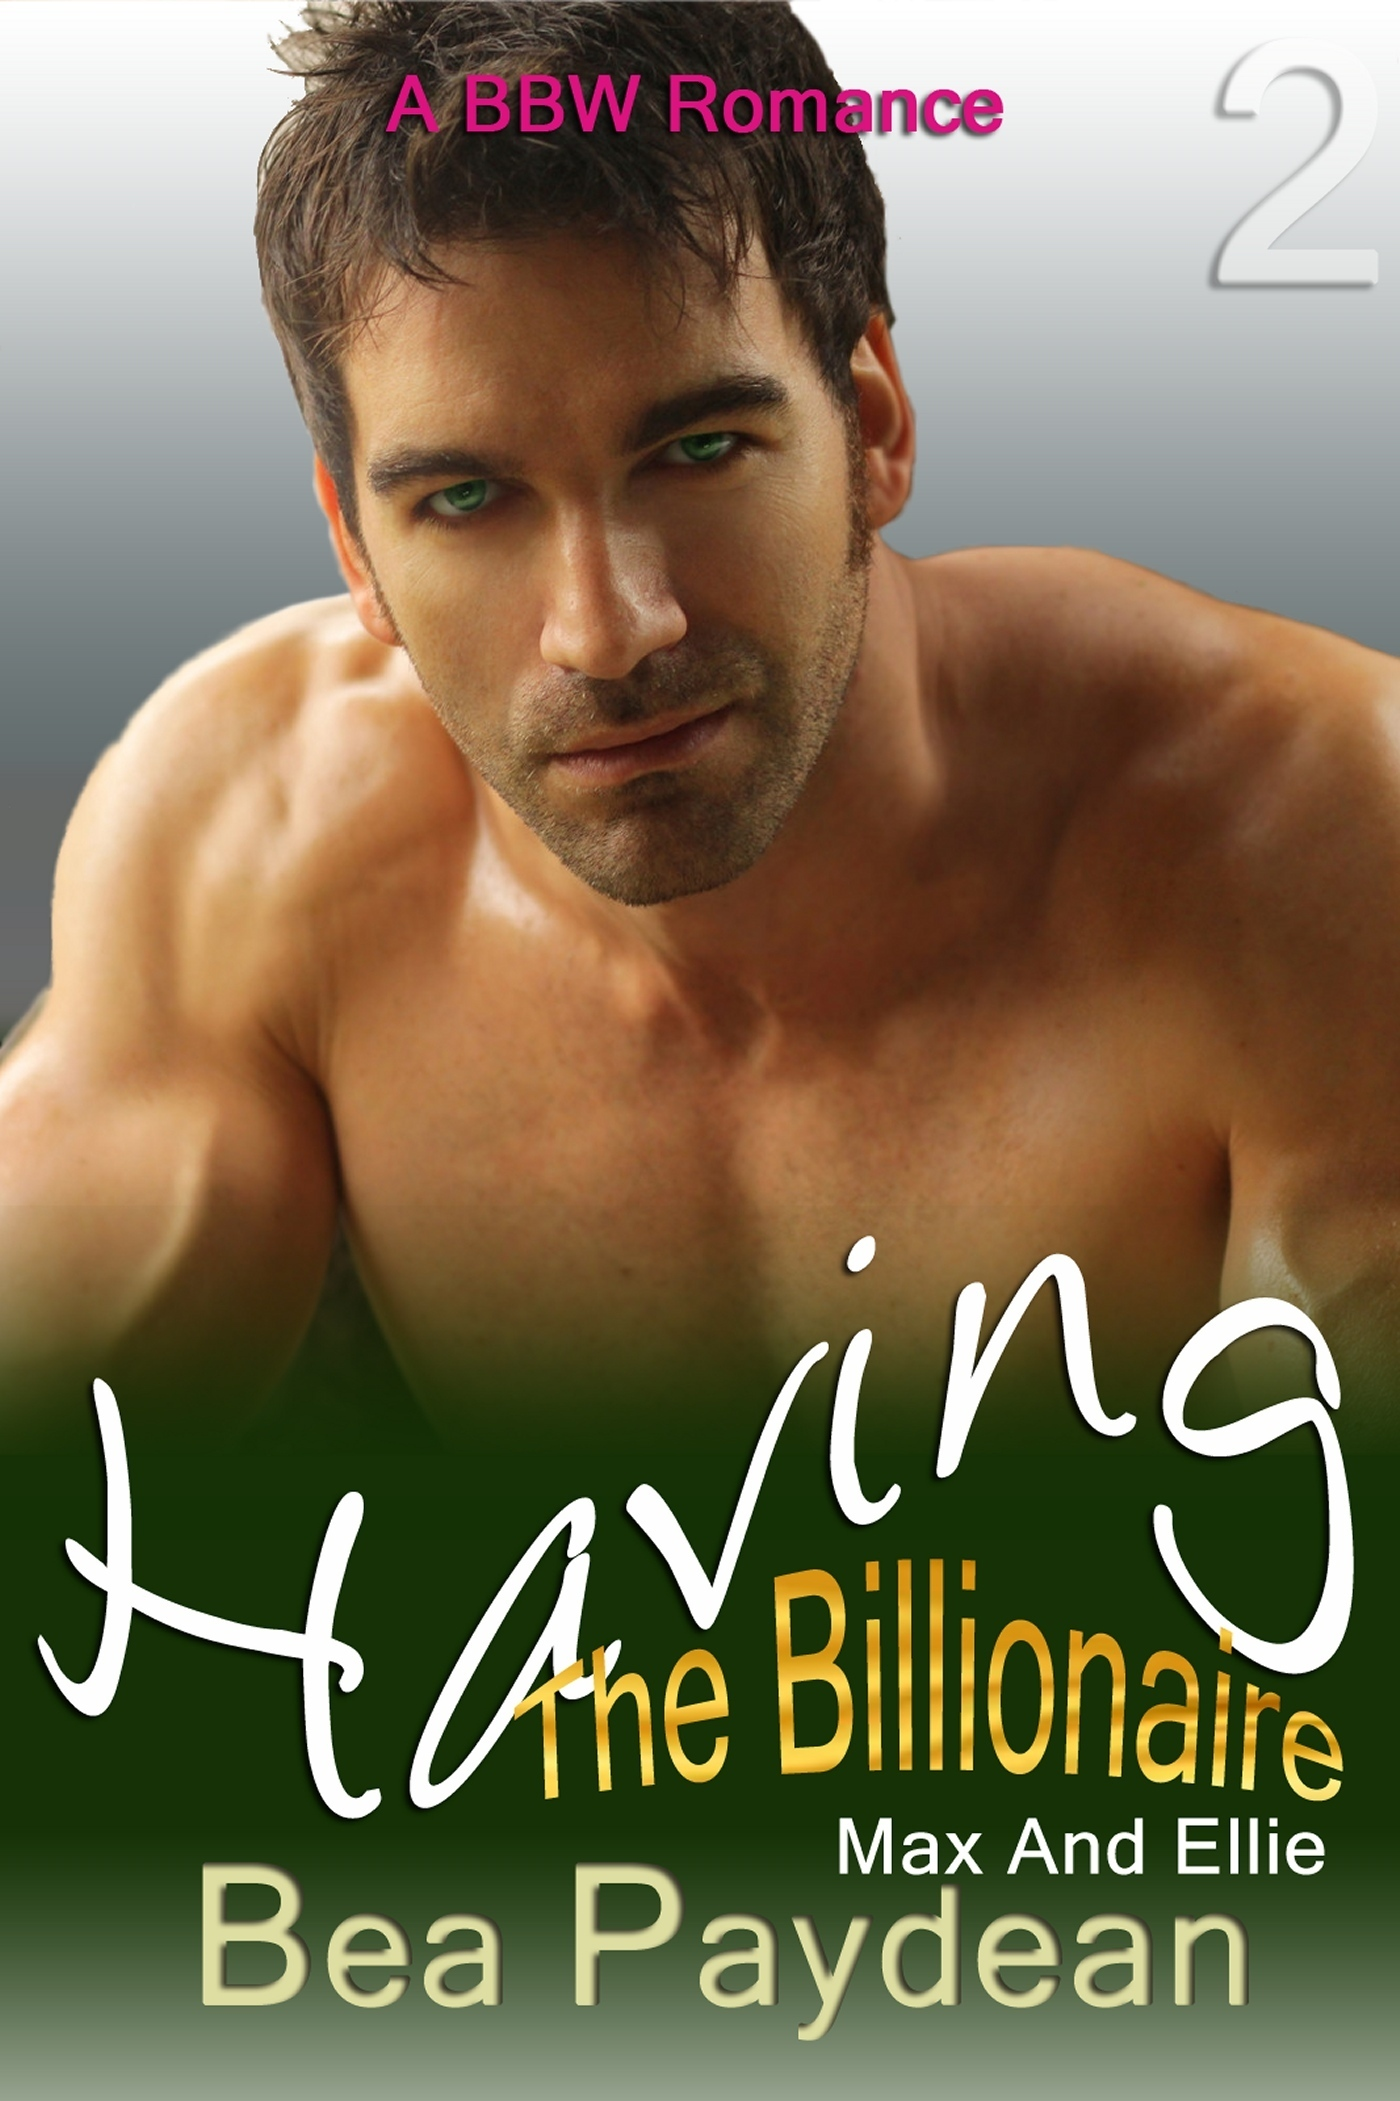 Having The Billionaire (A BBW Romance) (Max And Ellie #2)  by  Bea Paydean